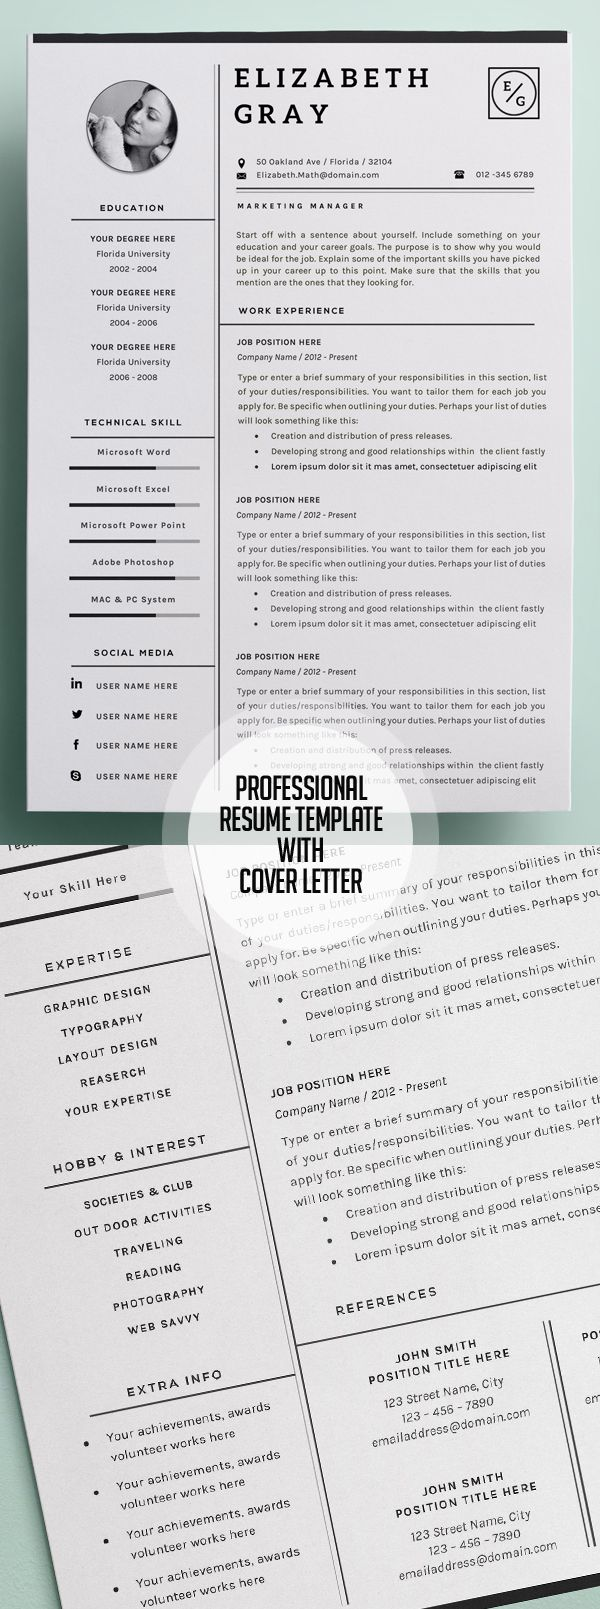 Opposenewapstandardsus  Fascinating  Resume Ideas On Pinterest  Resume Resume Templates And  With Lovable Professional And Modern Resume Template With Page Cover Cvtemplate With Alluring Clerical Skills Resume Also Statistician Resume In Addition Same Resume And Director Of Human Resources Resume As Well As Law School Resume Samples Additionally How To Describe Yourself On A Resume From Pinterestcom With Opposenewapstandardsus  Lovable  Resume Ideas On Pinterest  Resume Resume Templates And  With Alluring Professional And Modern Resume Template With Page Cover Cvtemplate And Fascinating Clerical Skills Resume Also Statistician Resume In Addition Same Resume From Pinterestcom